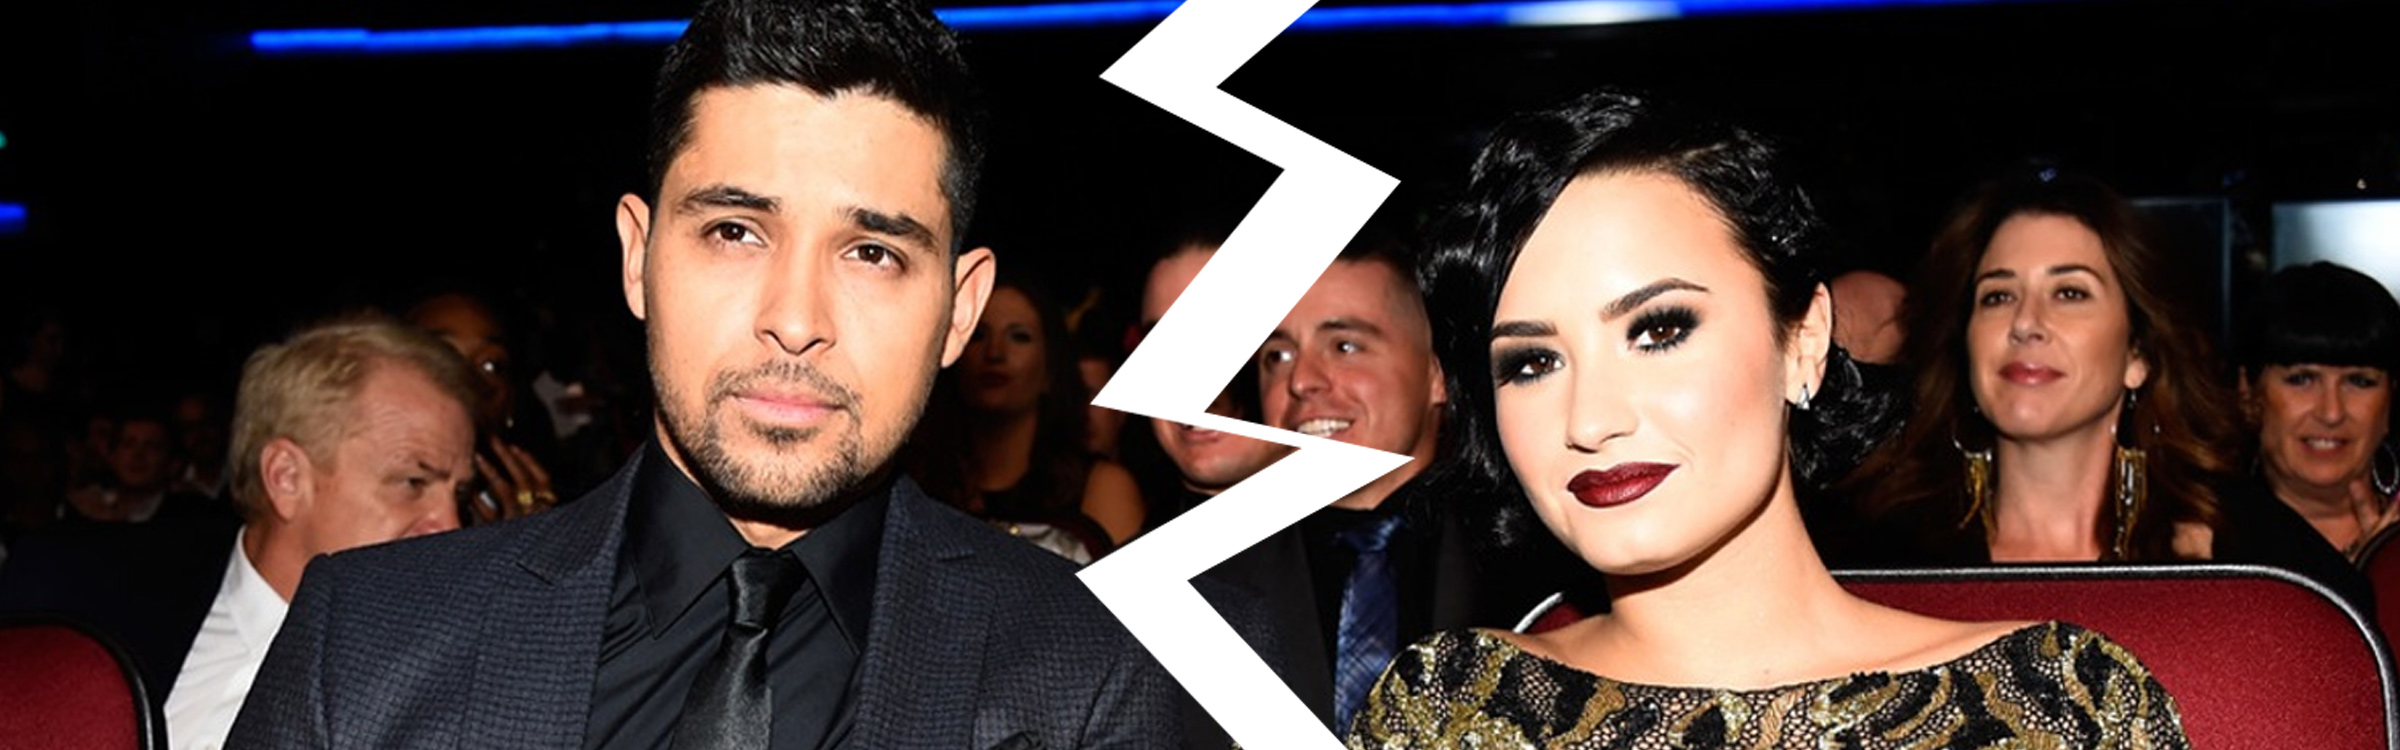 Demi wilmer break up header